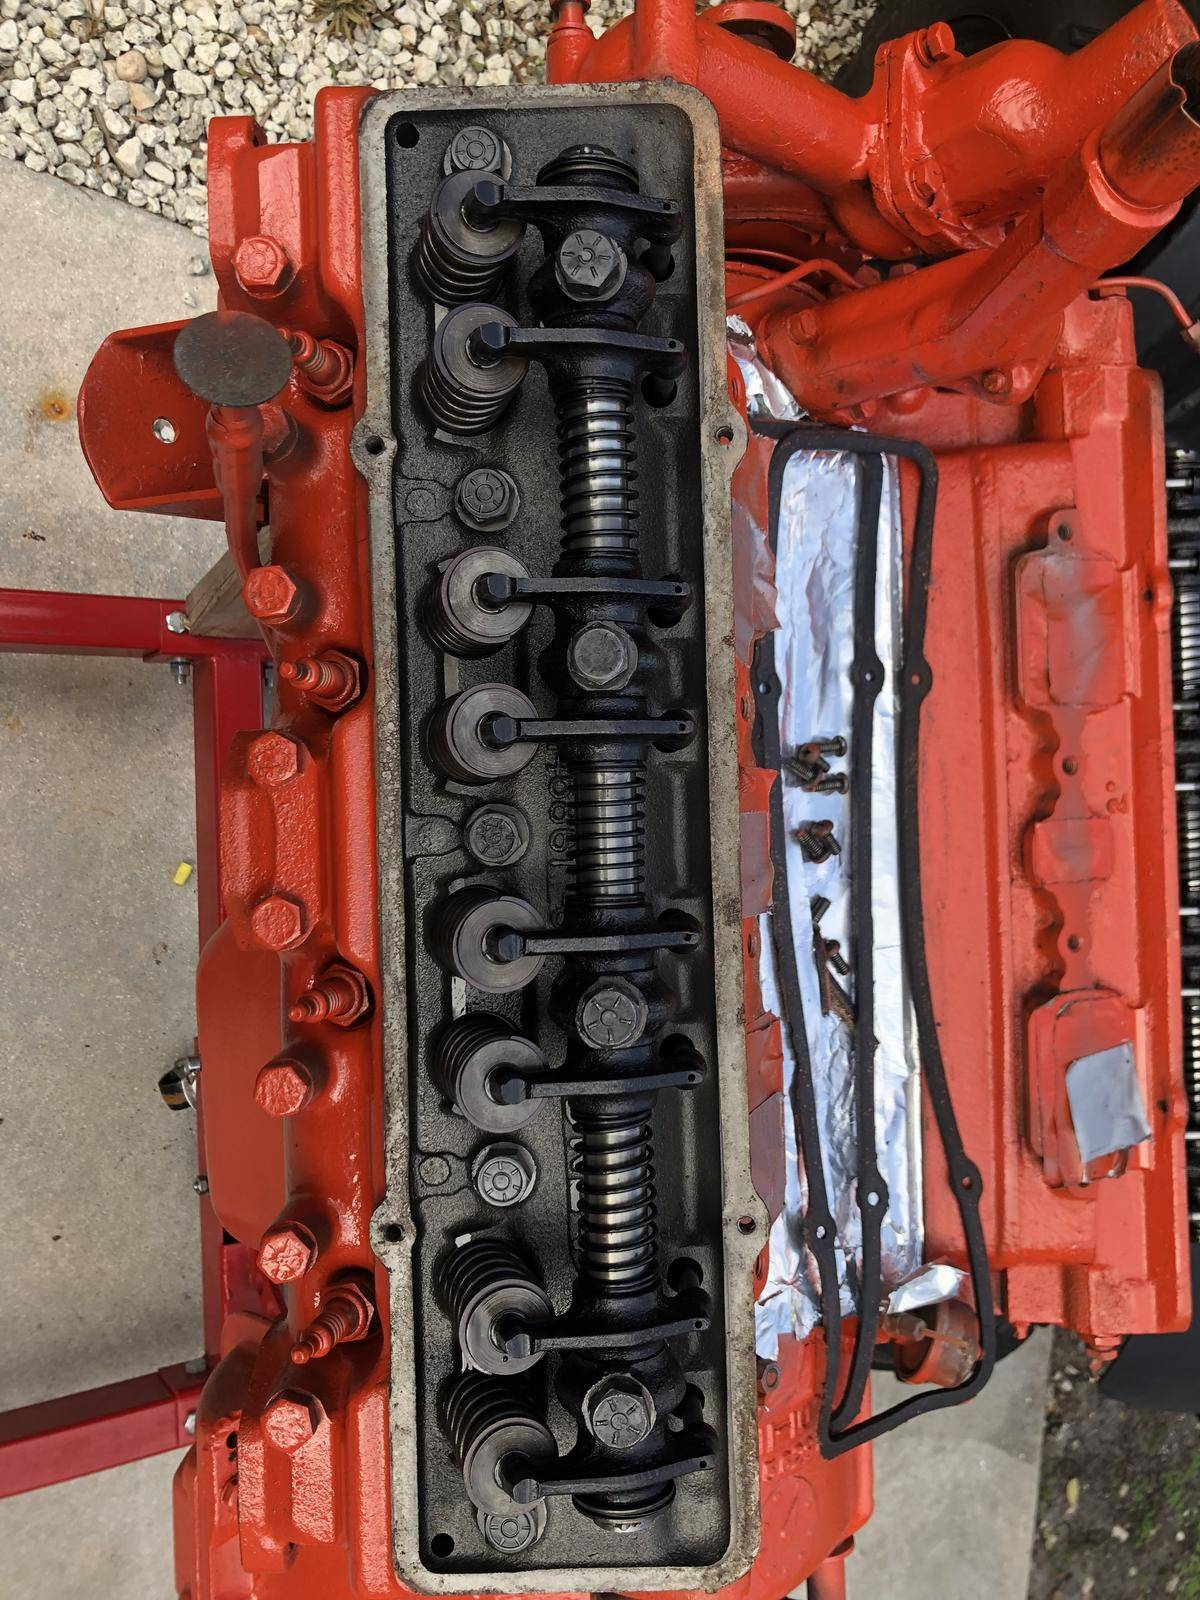 small resolution of image 1 of 9 1952 cadillac 331 engine